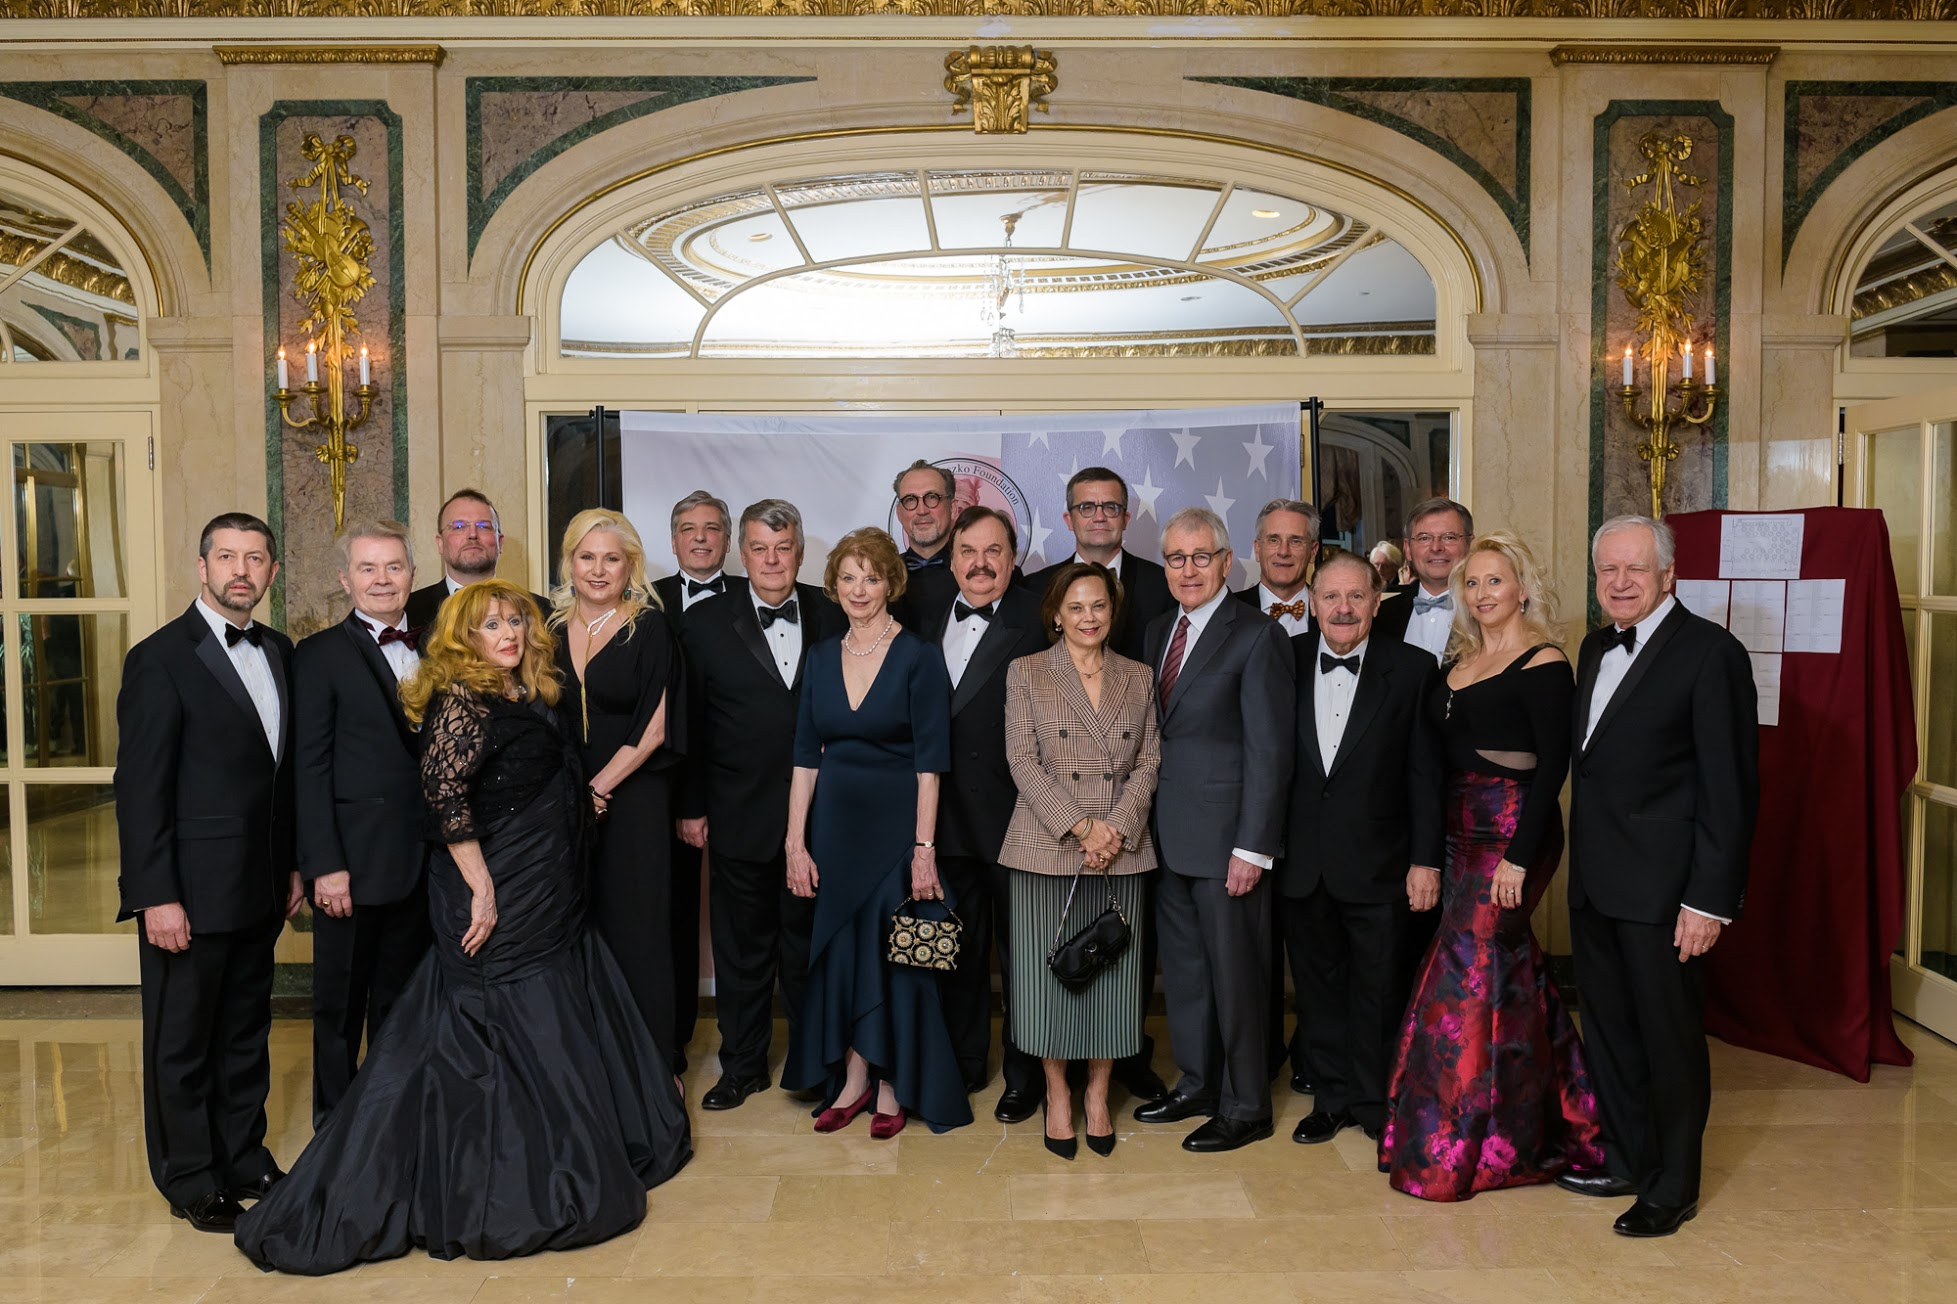 The KF 84th Annual Dinner & Ball in 2019